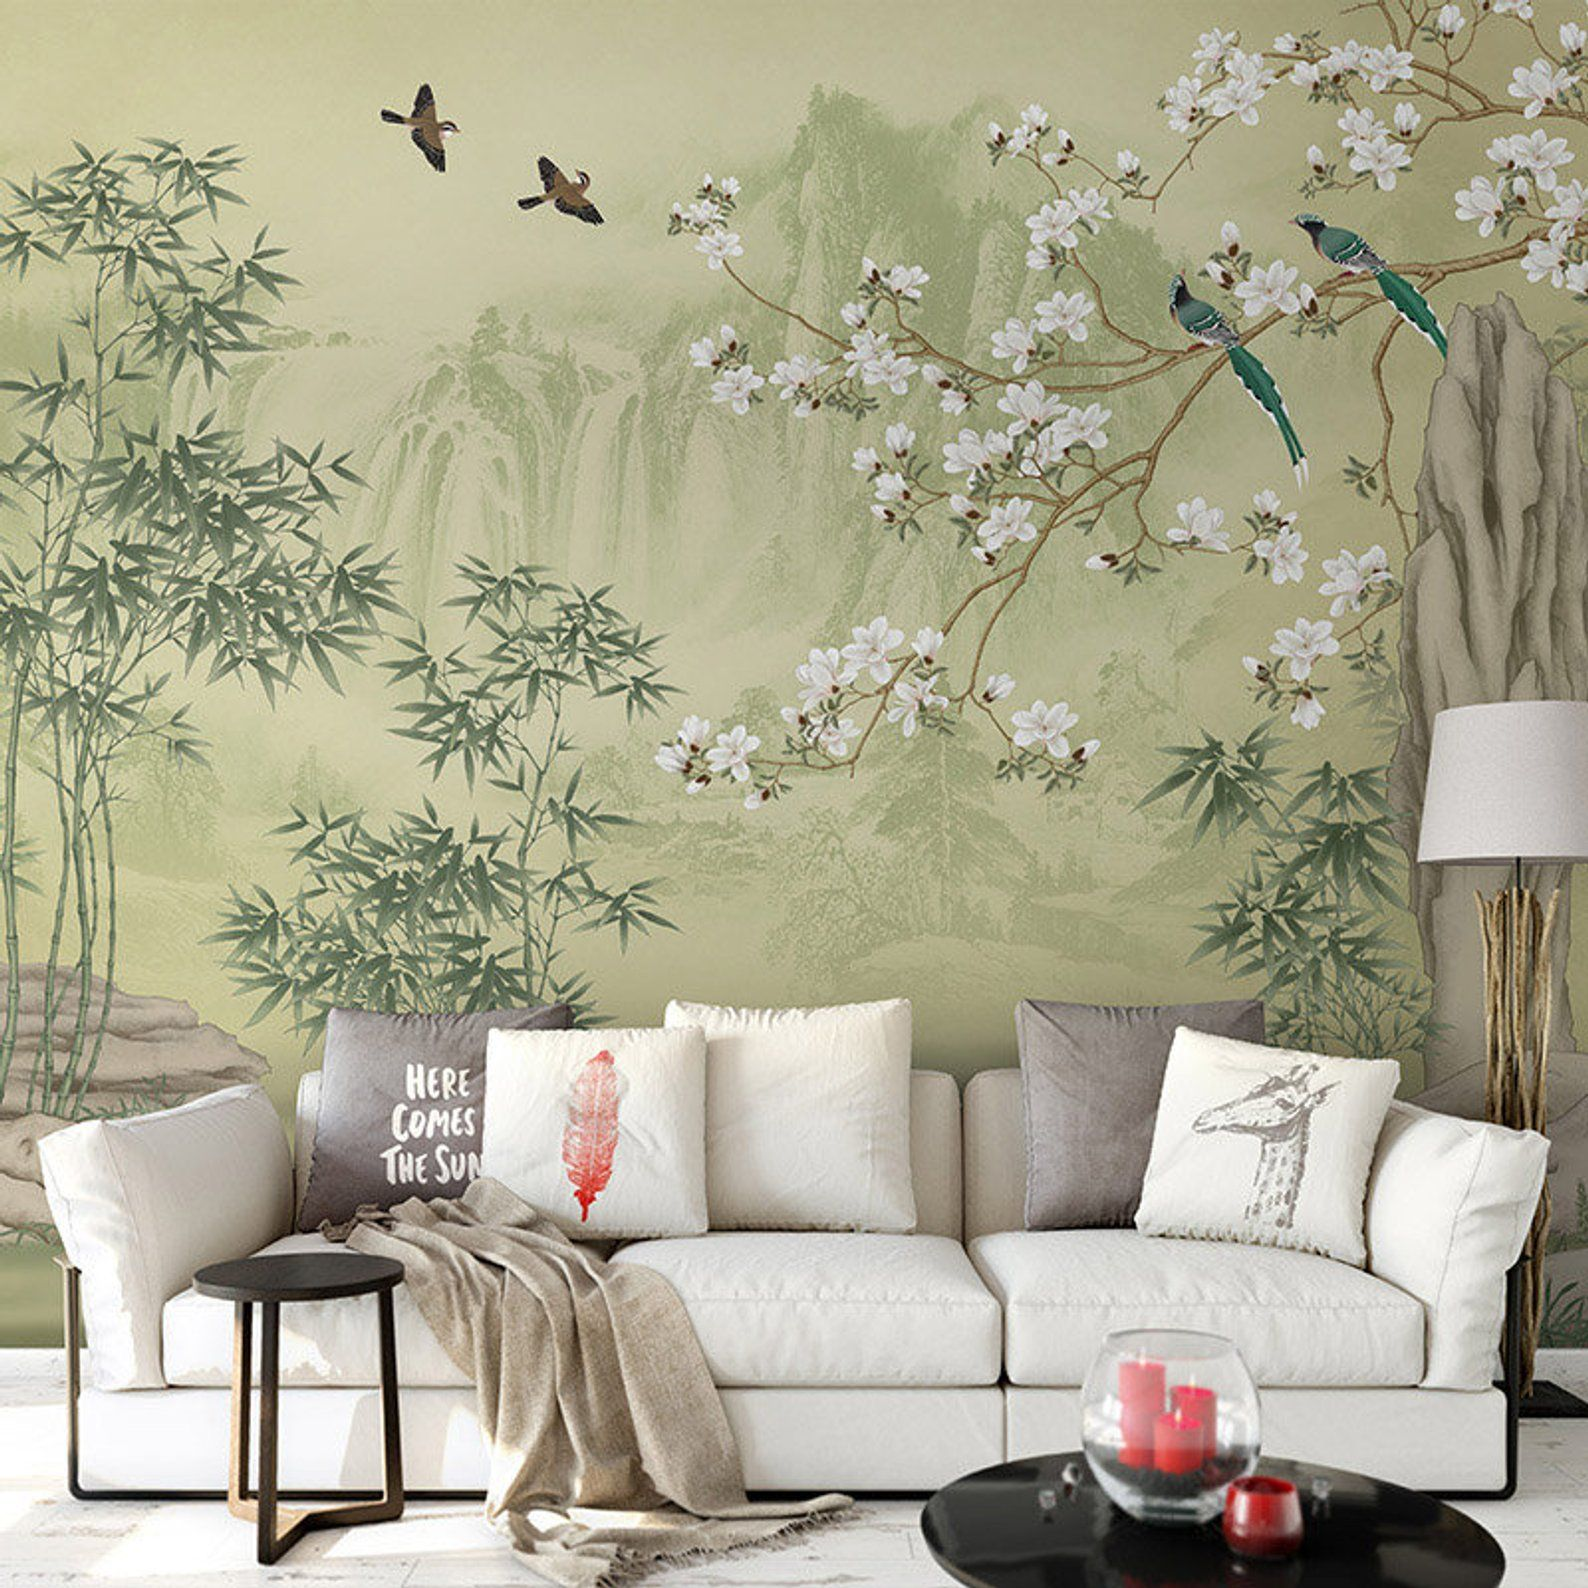 Lemon Green Landscape Scenic Wallpaper Wall Mural Moutains Trees Bamboo Birds Flowers Wall Decal Bedroom Living Room Wallpaper With Images Scenic Wallpaper Wall Wallpaper Wallpaper Living Room